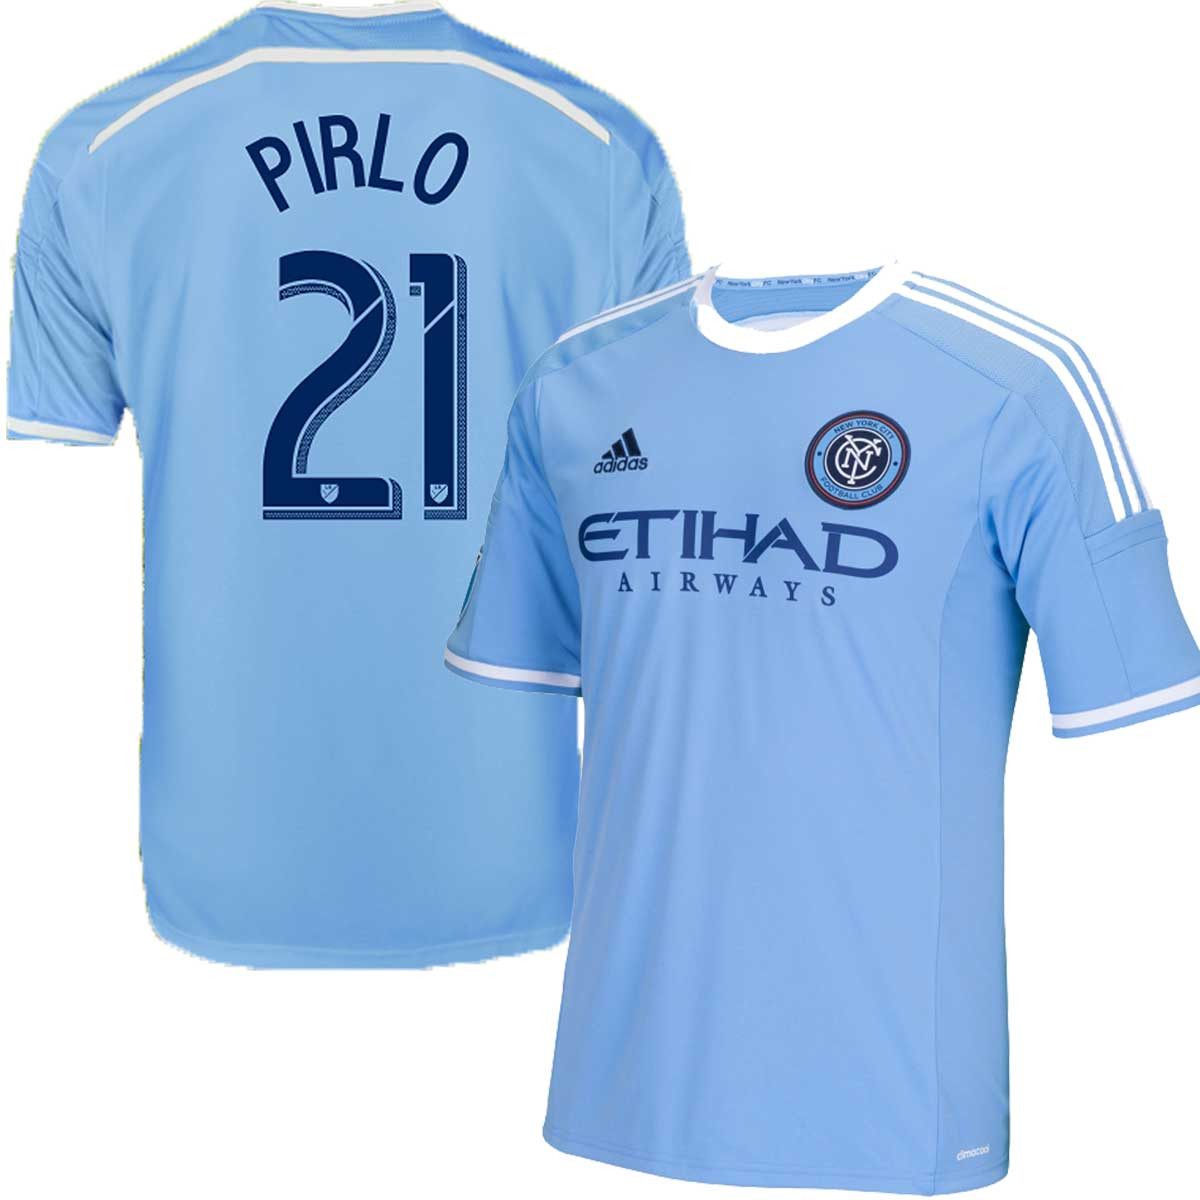 Andrea Pirlo Jersey photo